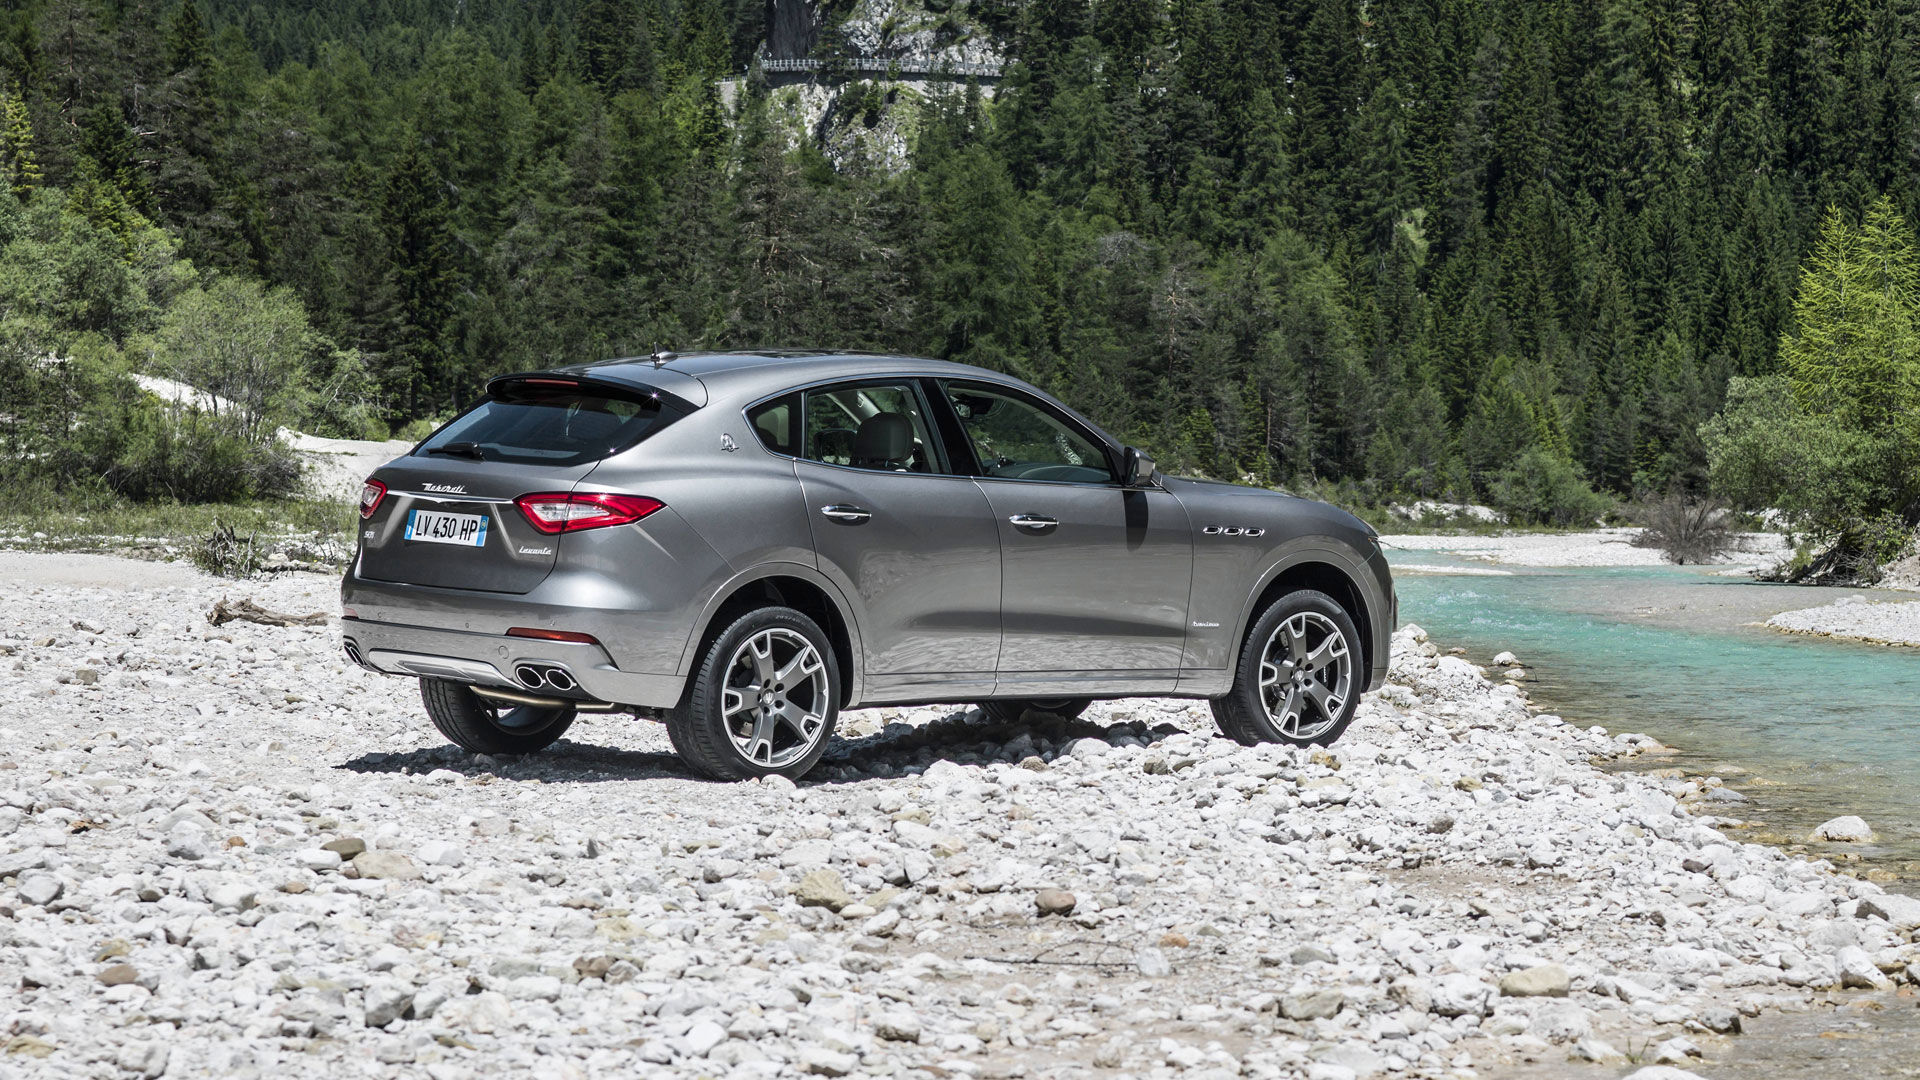 Maserati Levante grey - rear and side view- river landscape perspective